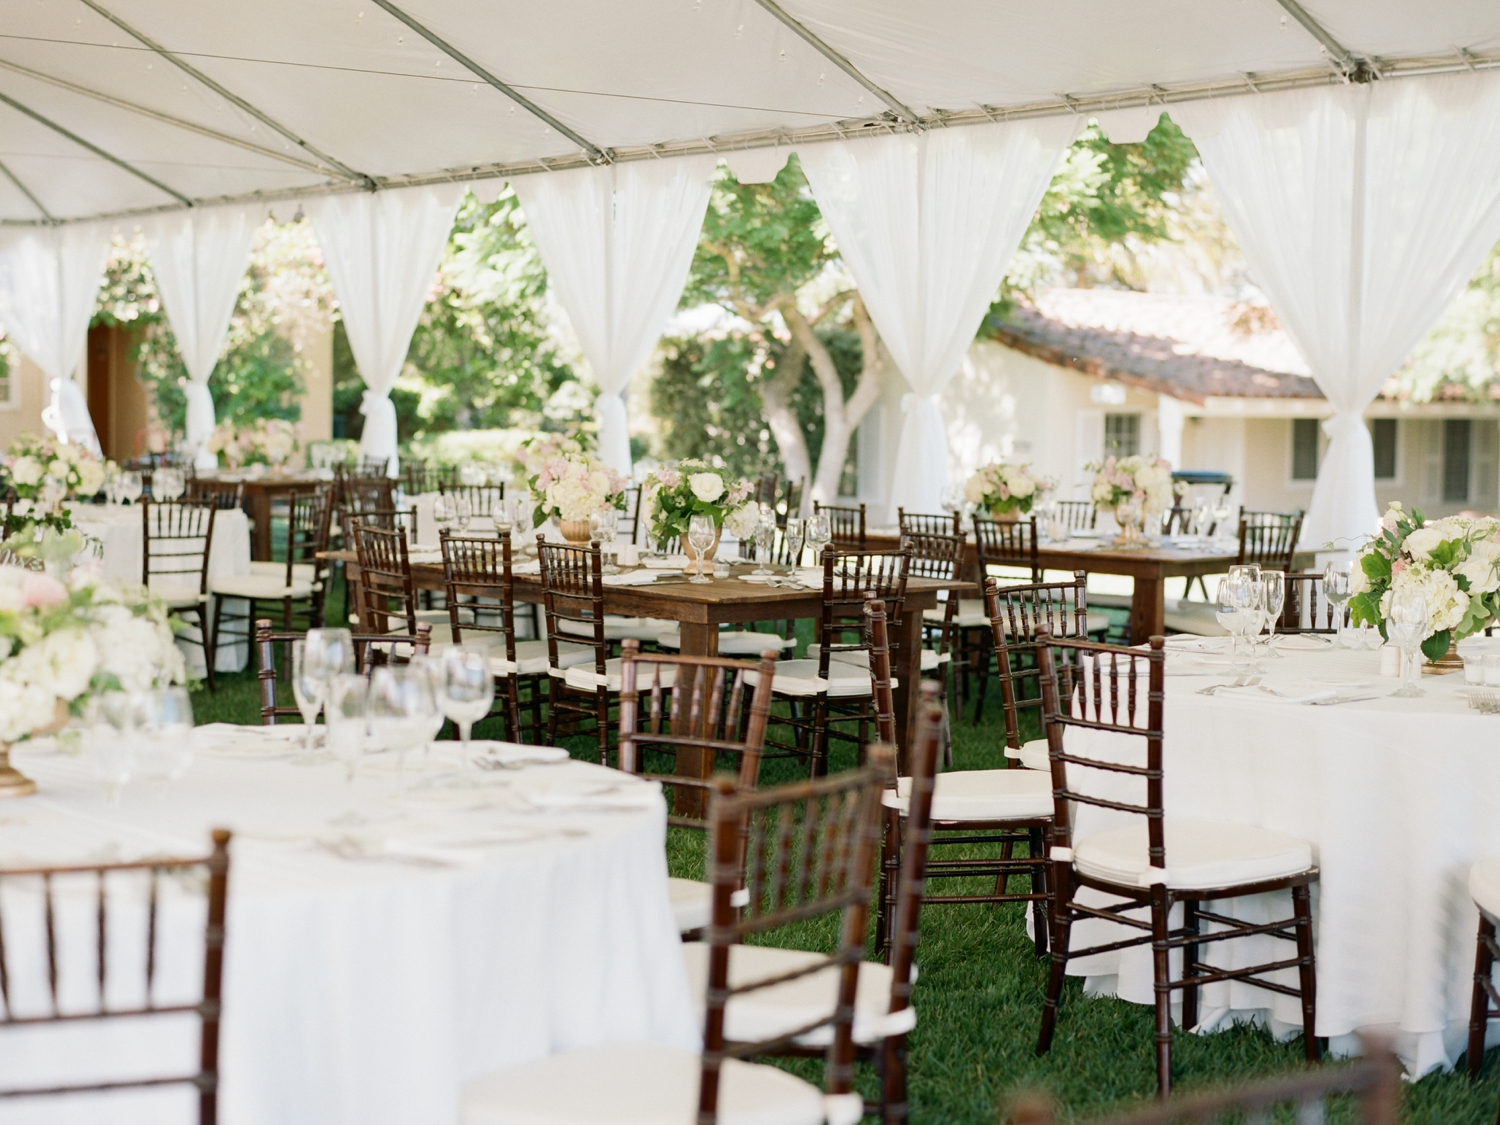 Lvl Weddings And Events Inn At Rancho Santa Fe